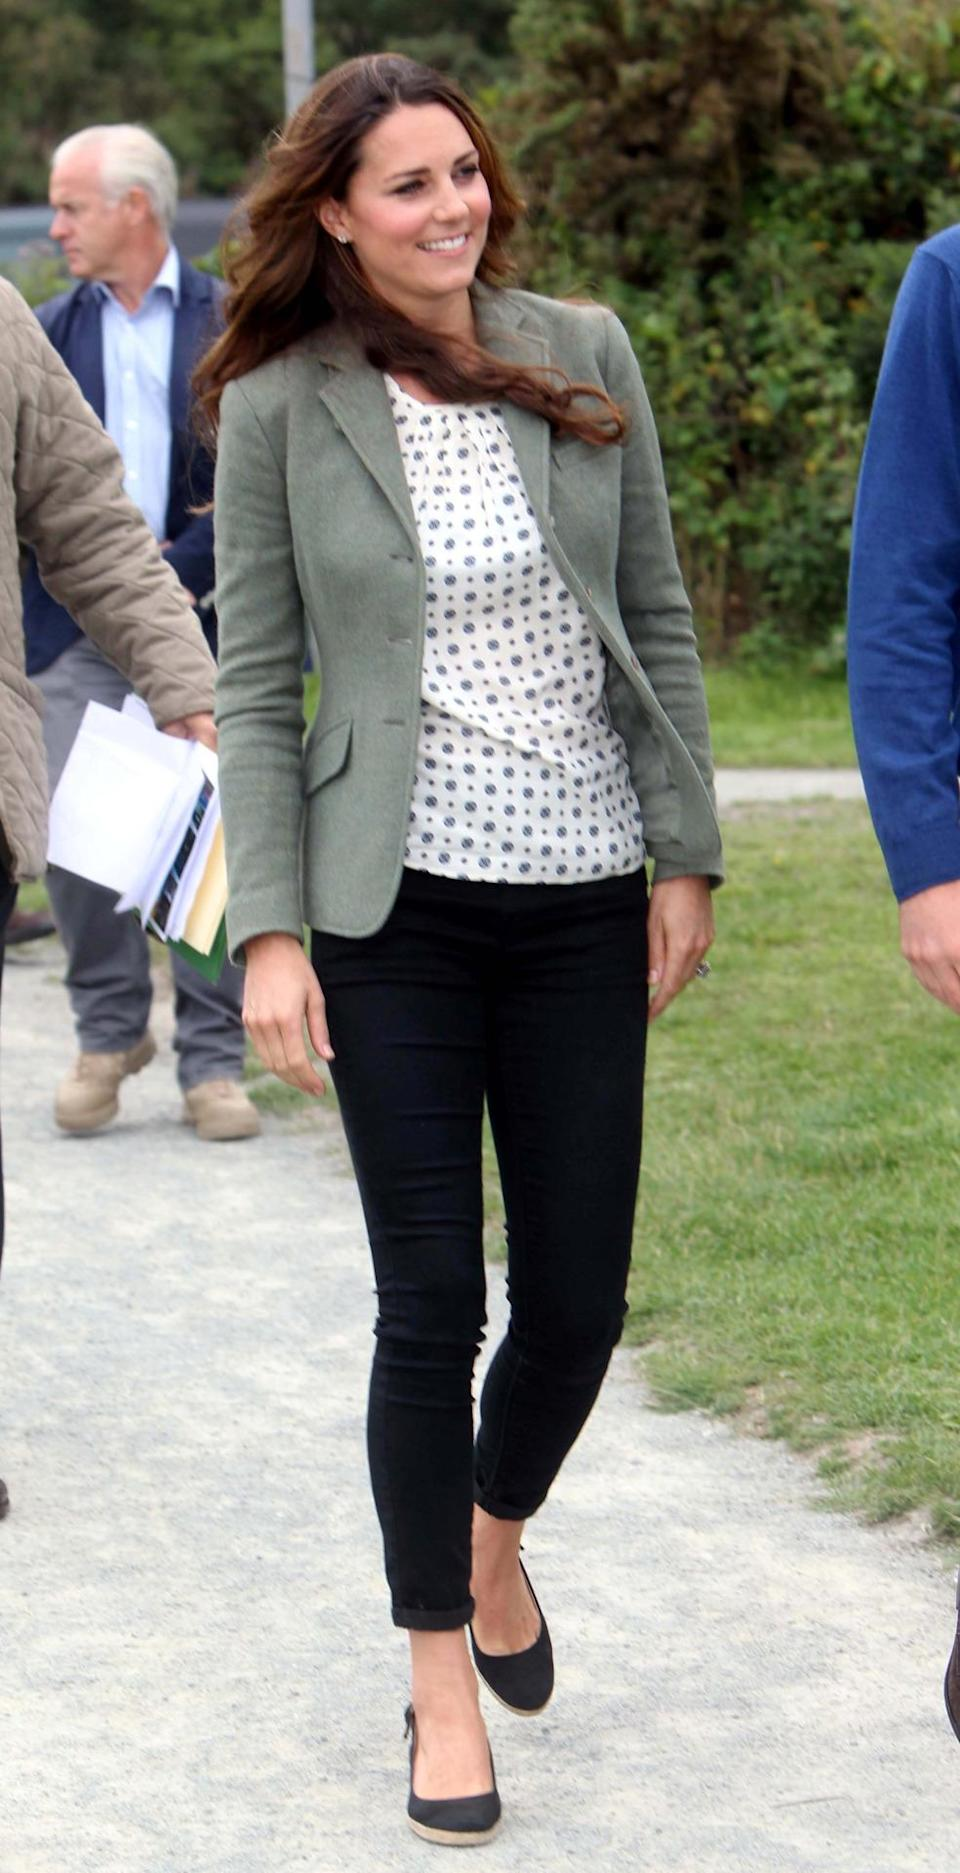 <p>Kate arrived in Anglesey for the annual marathon wearing a printed Zara top, black jeans, a khaki Ralph Lauren jacket and Pied a Terre espadrille wedges. </p><p><i>[Photo: PA]</i></p>